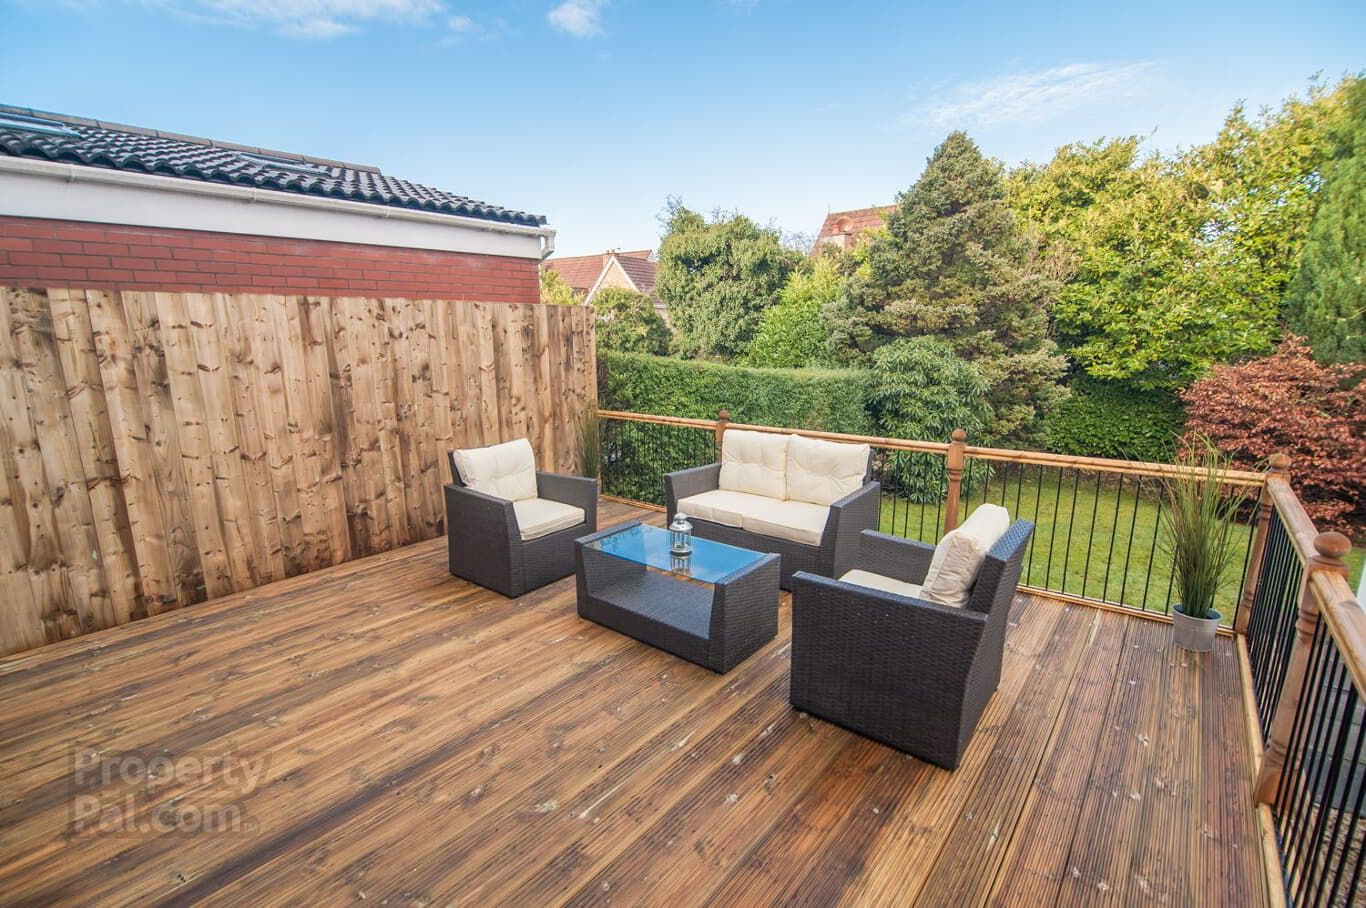 21 Abbey Gardens, Belfast #garden (With images) | Small ...